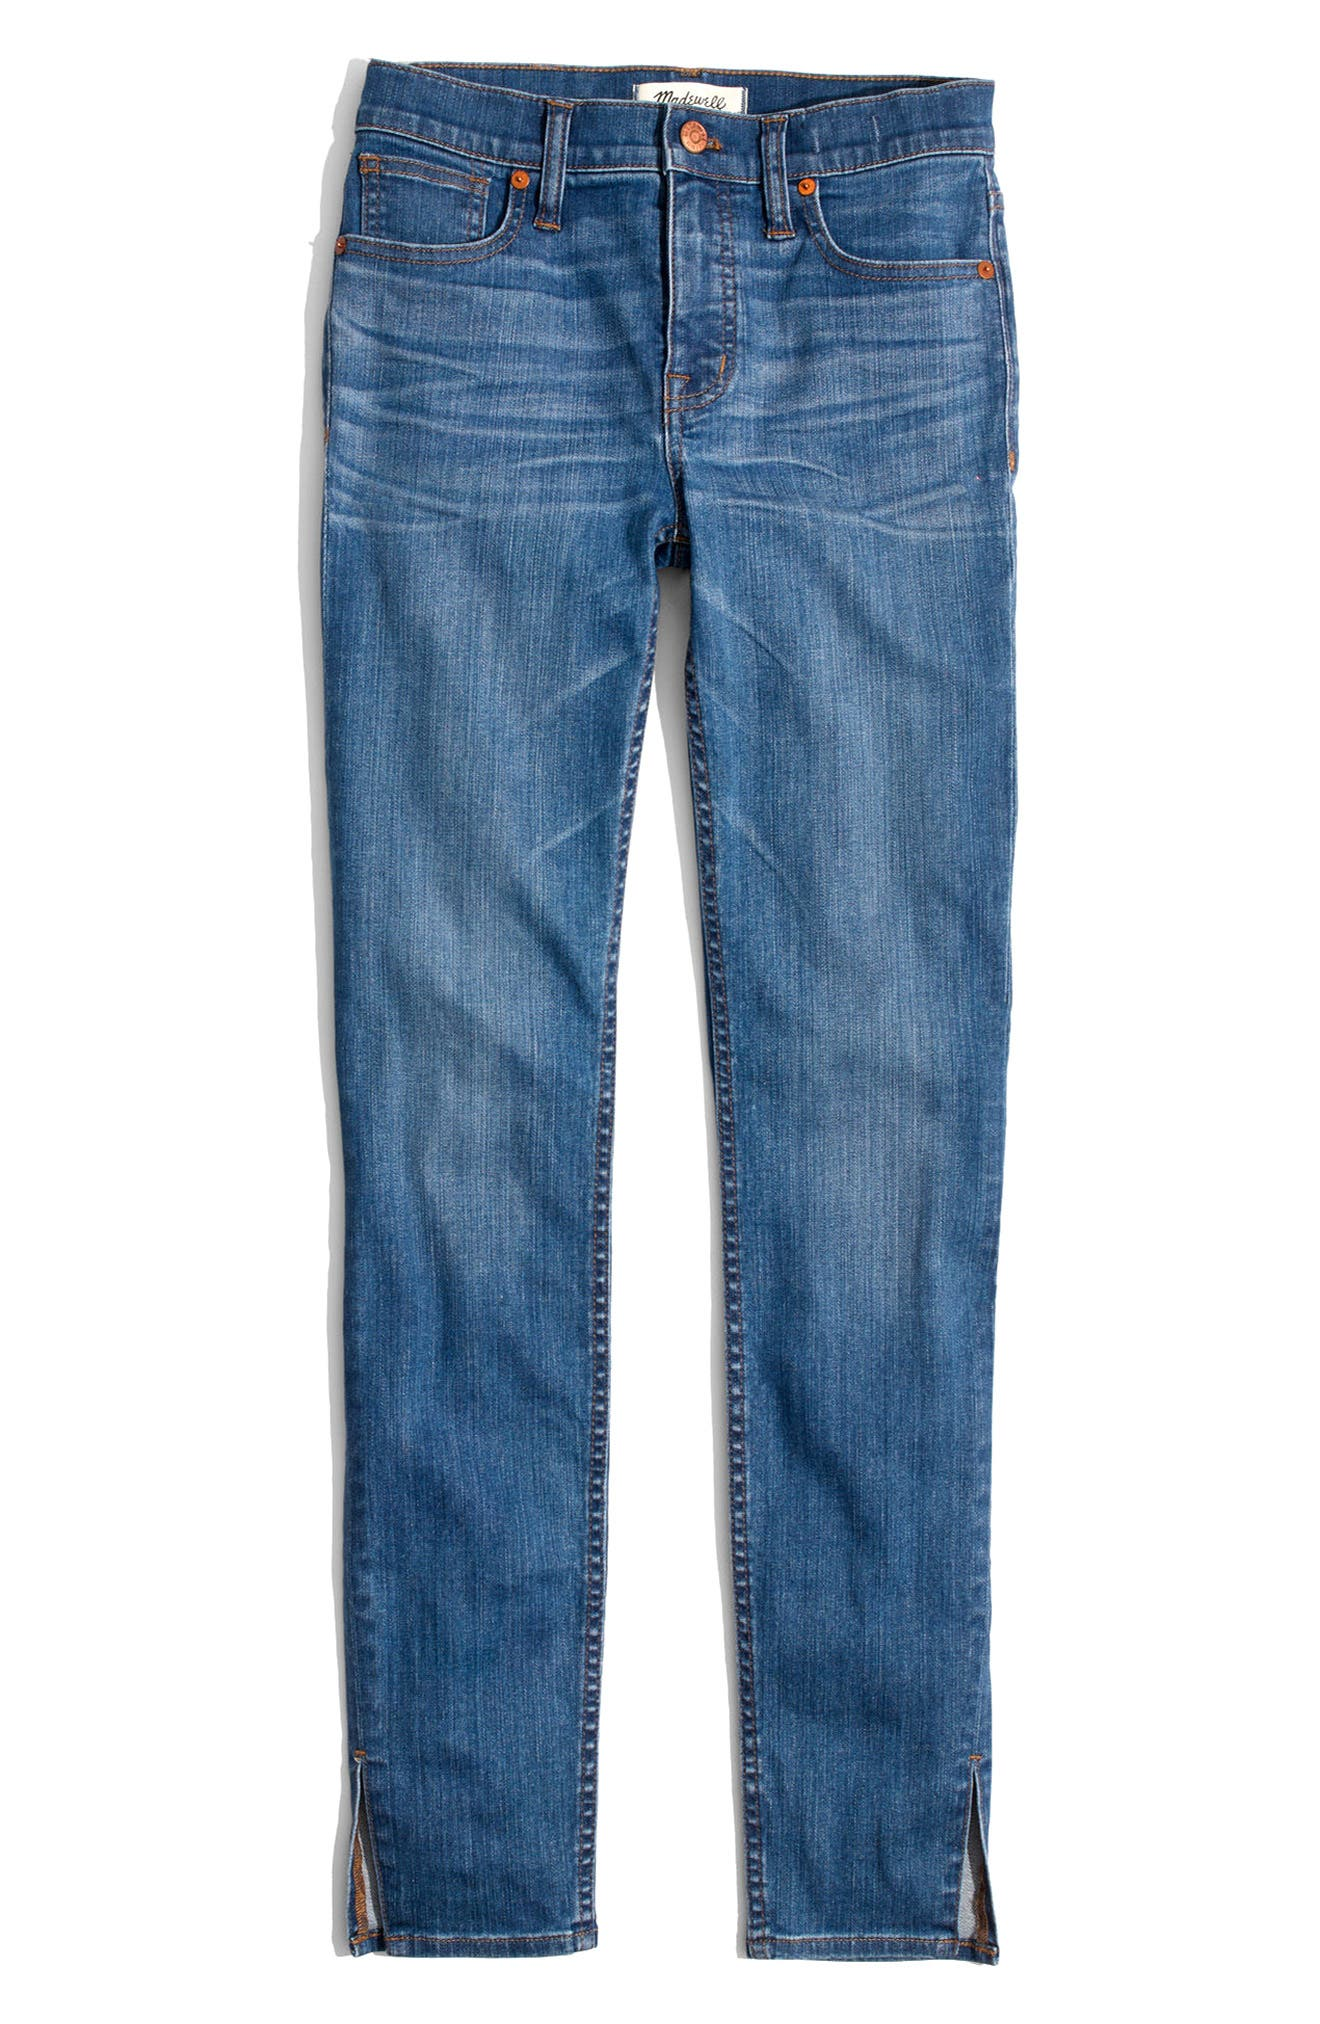 9-Inch High-Rise Skinny Jeans: Side-Slit Edition,                             Alternate thumbnail 5, color,                             400